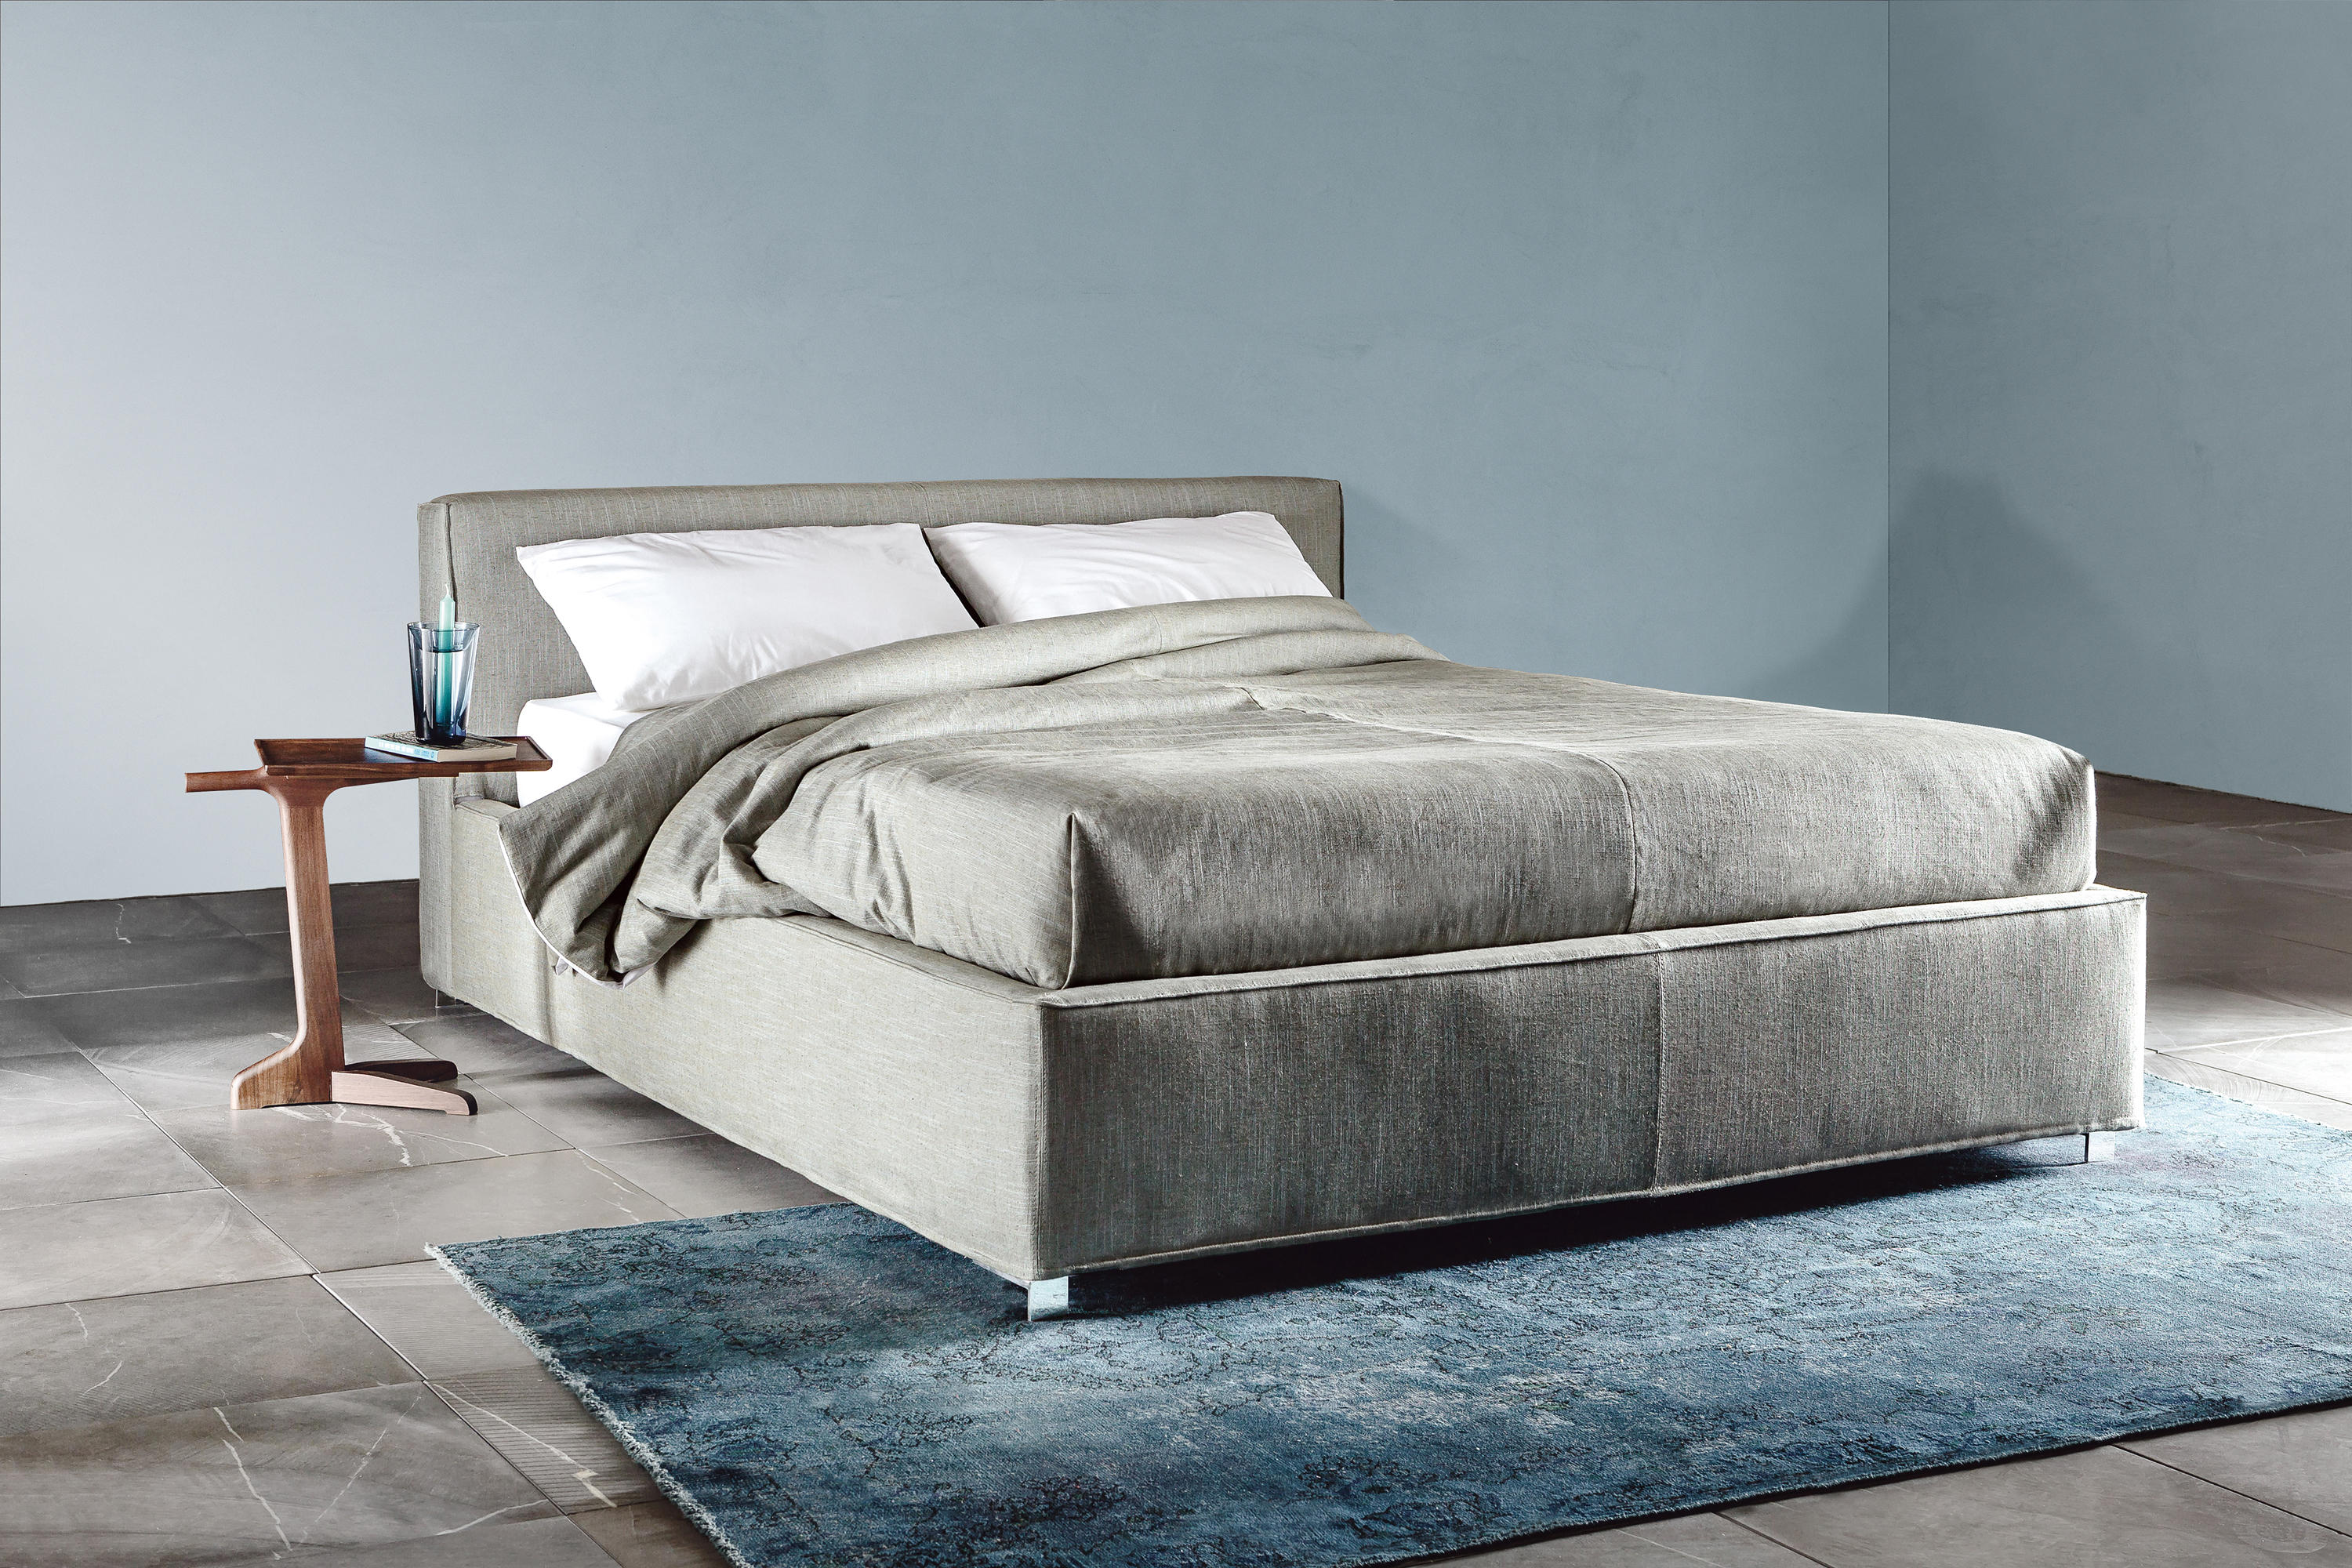 Superb ... Bel Air 5200 Bed By Vibieffe Design Inspirations